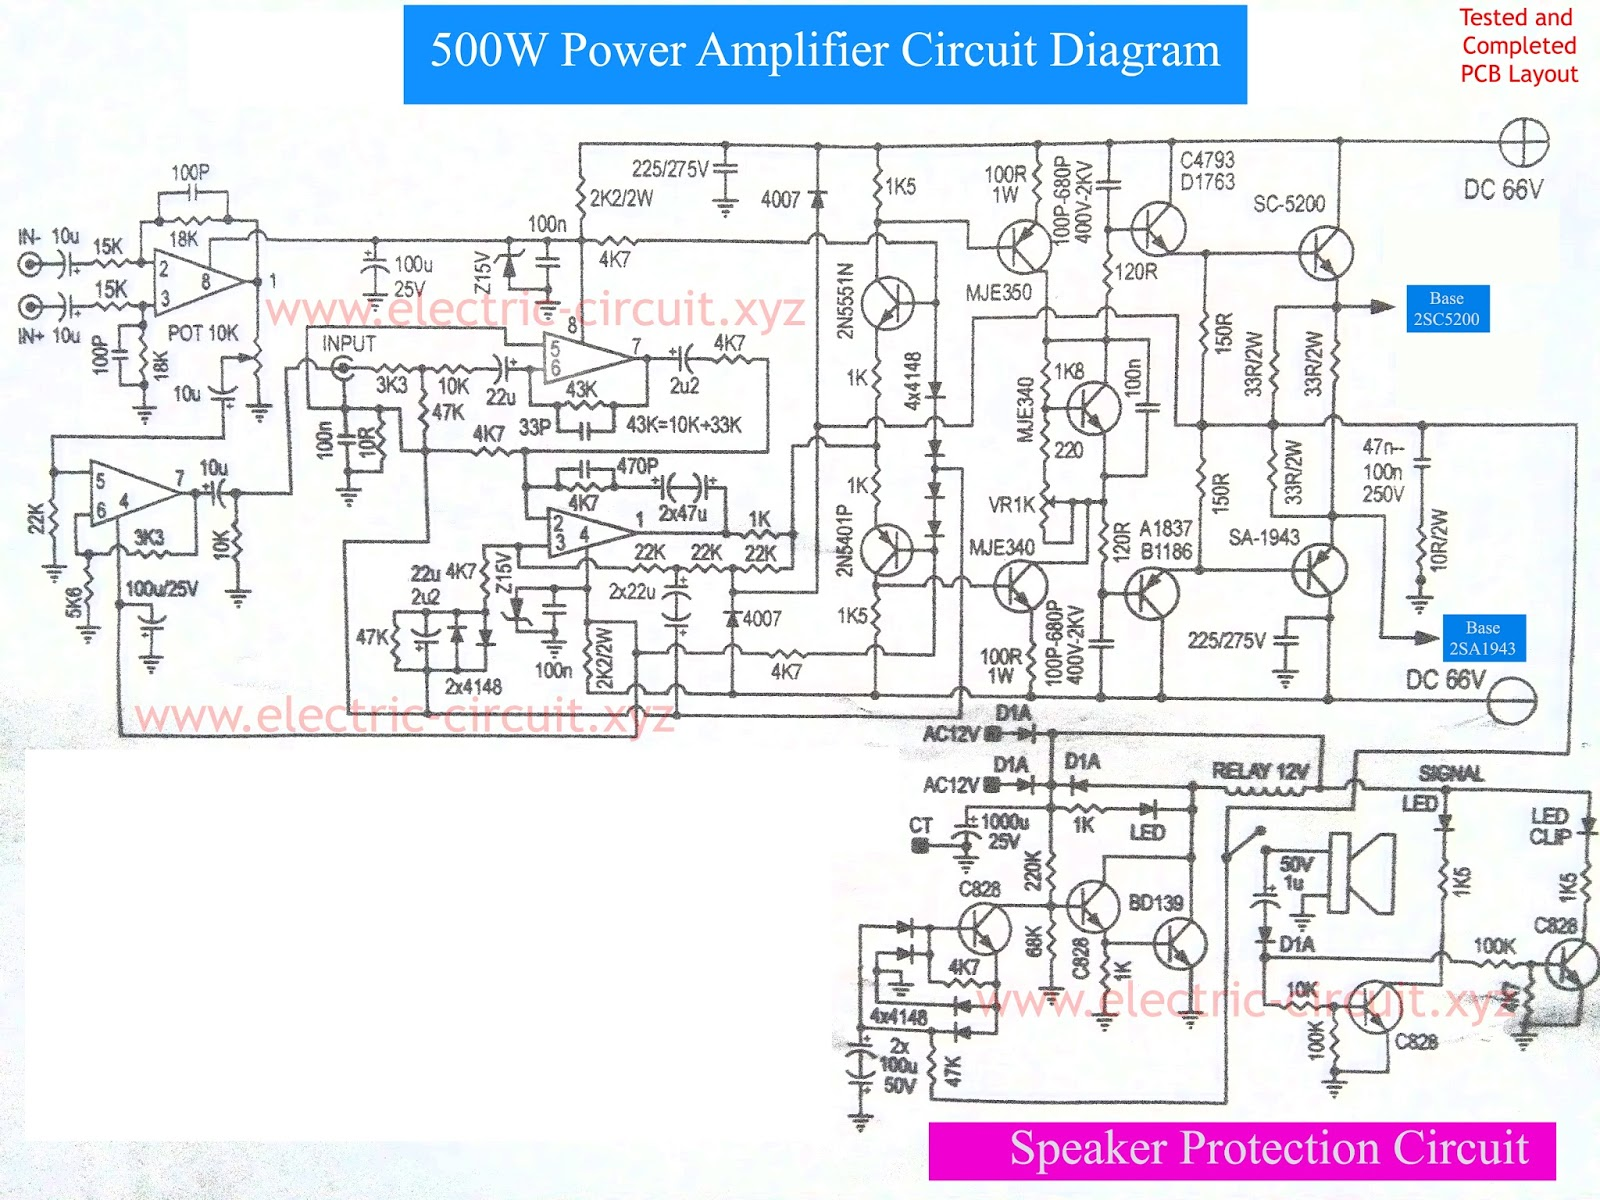 home subwoofer amp wiring diagram images gallery [ 1600 x 1200 Pixel ]